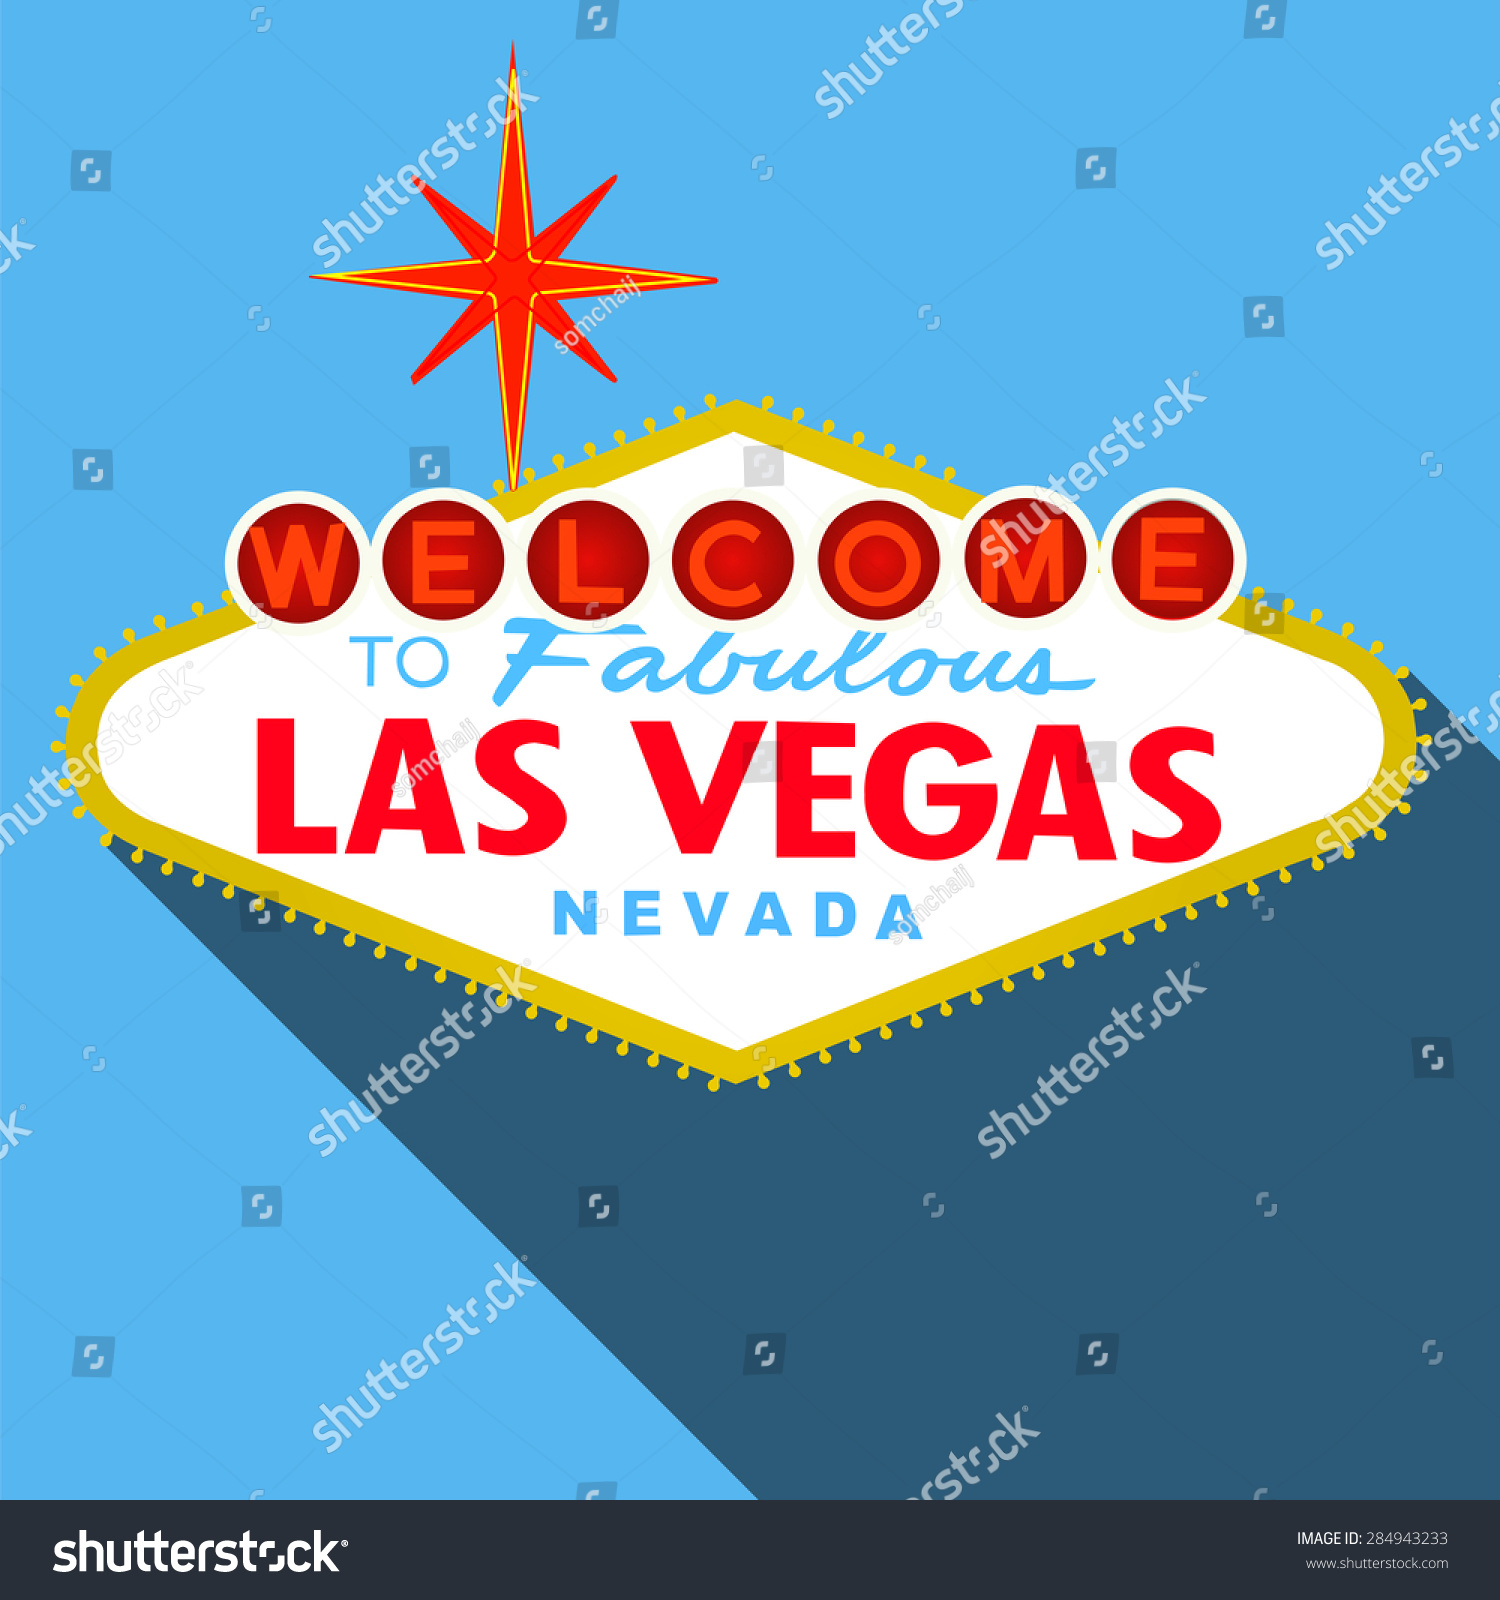 Extraordinary las vegas sign vector free images